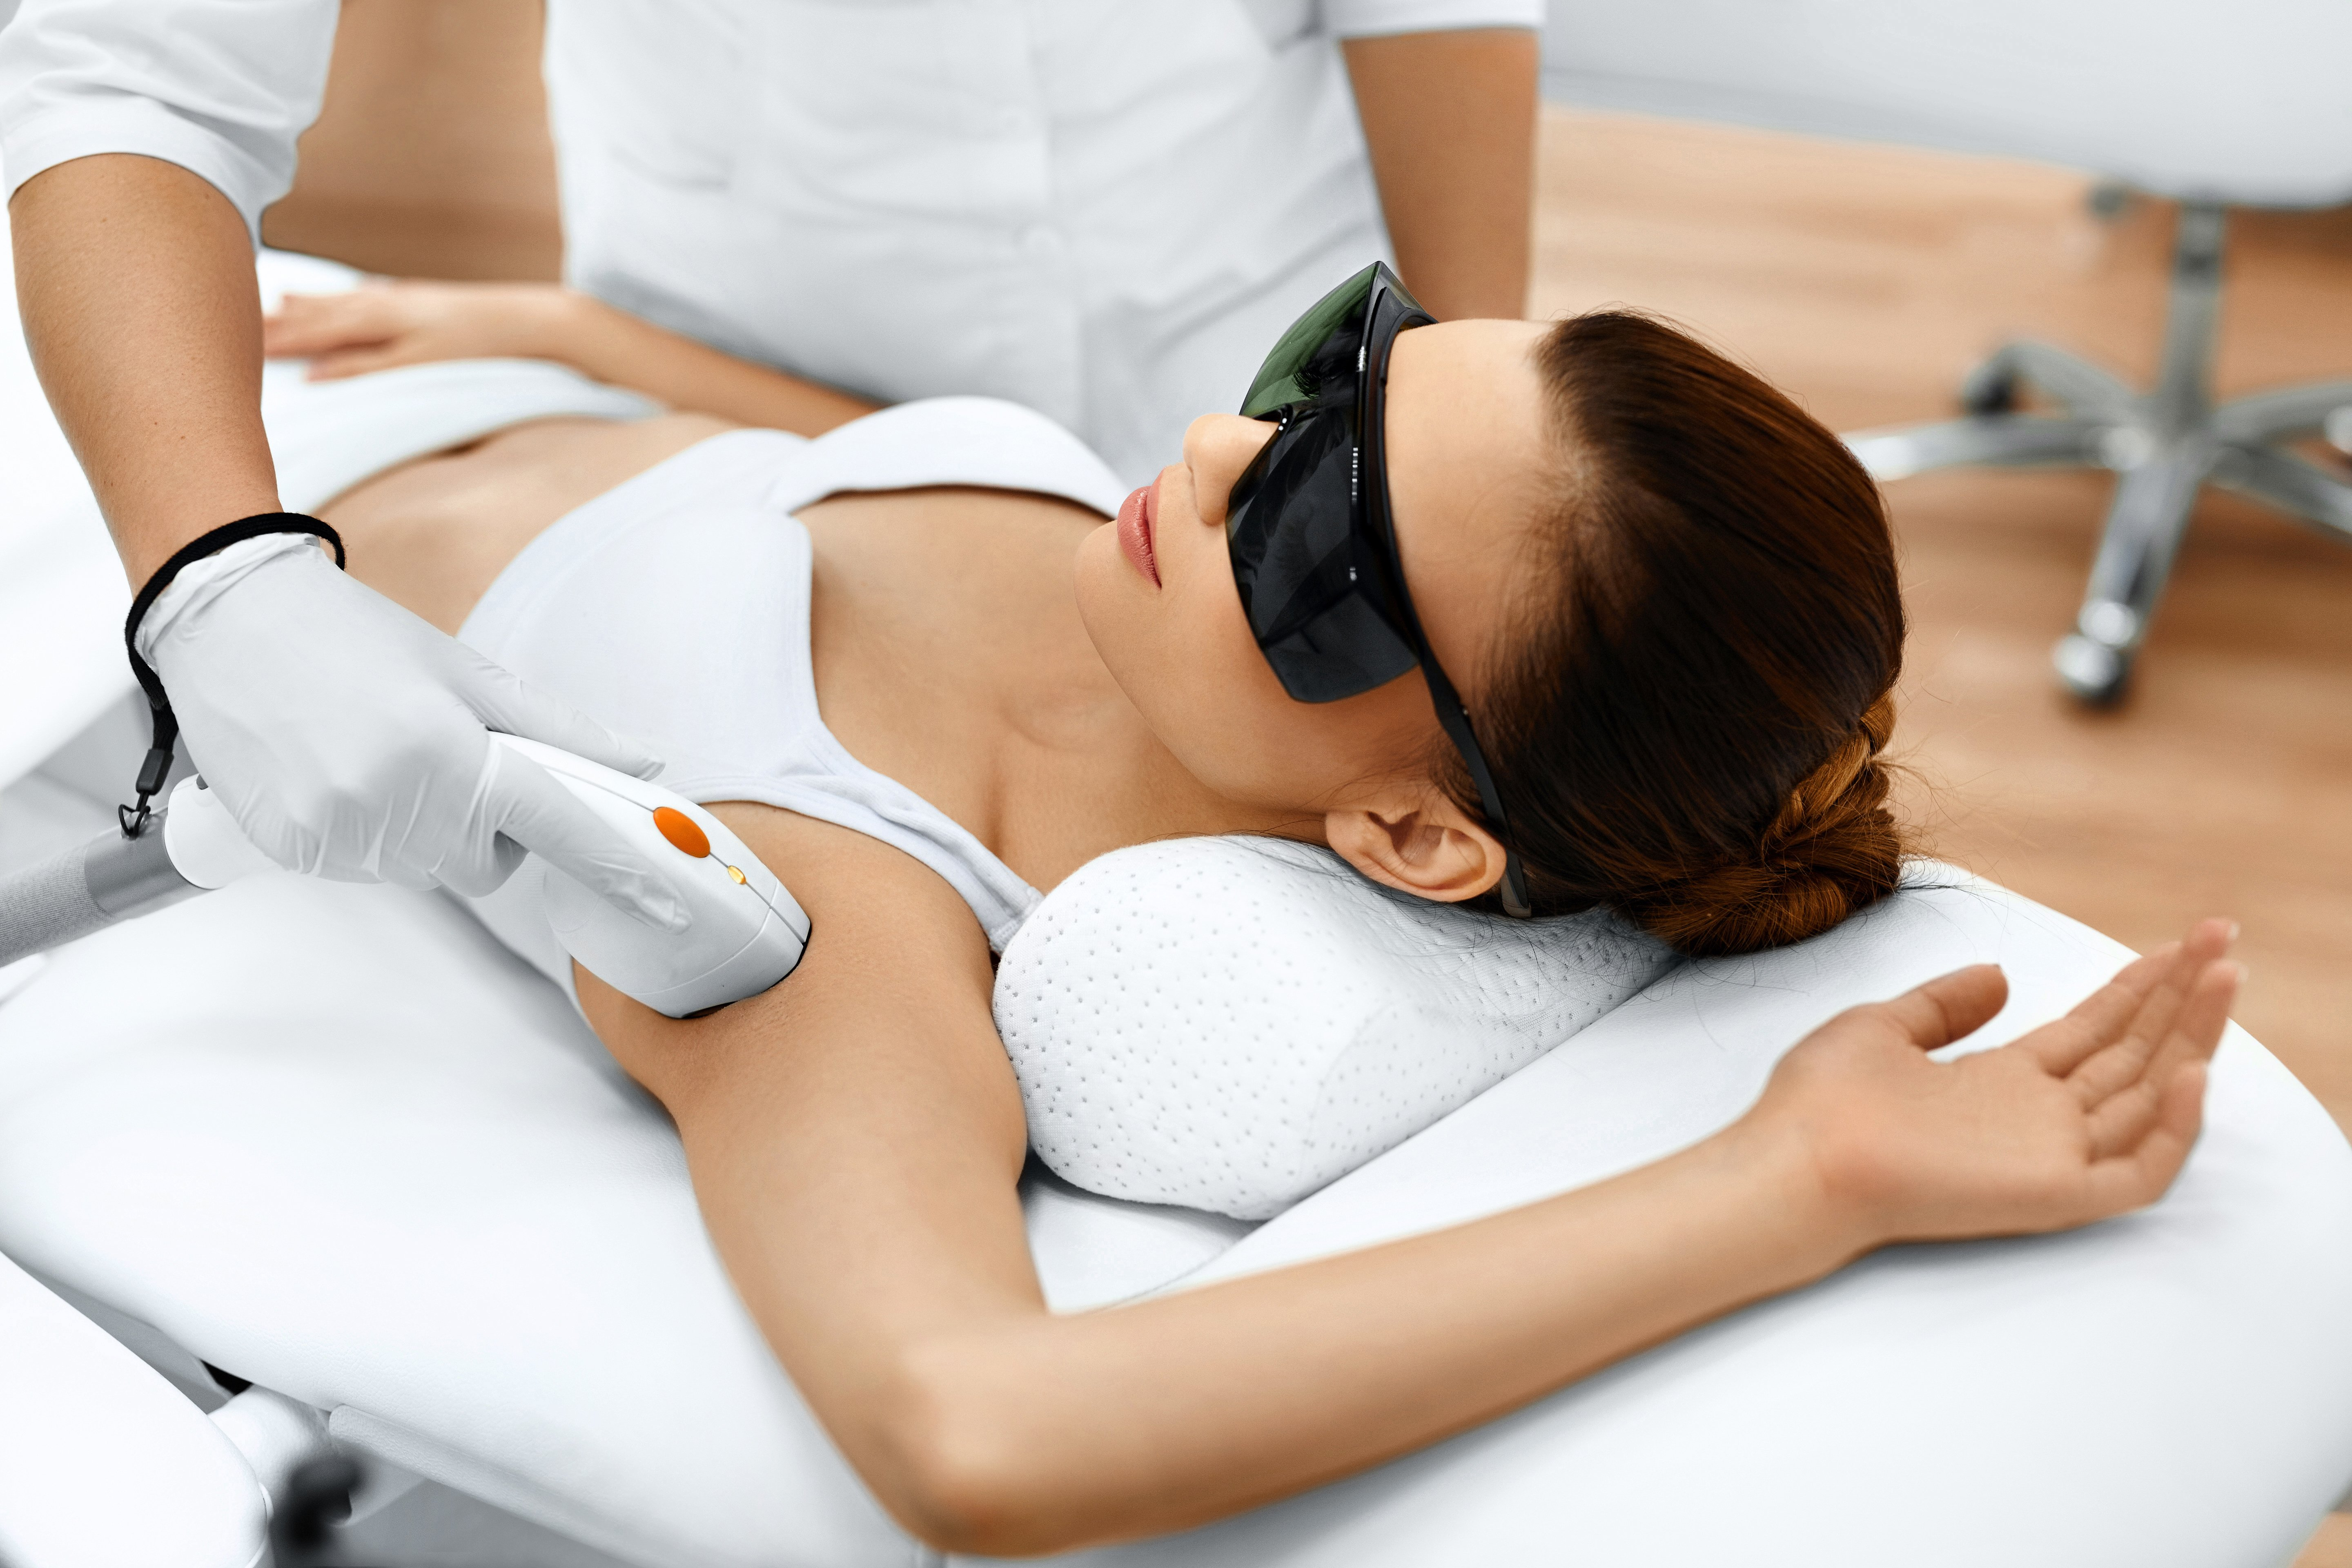 Laser Hair Removal for All Skin Types Including Darker Ethnic Skin Tones such as Asian, Latin, African American or Black Skin